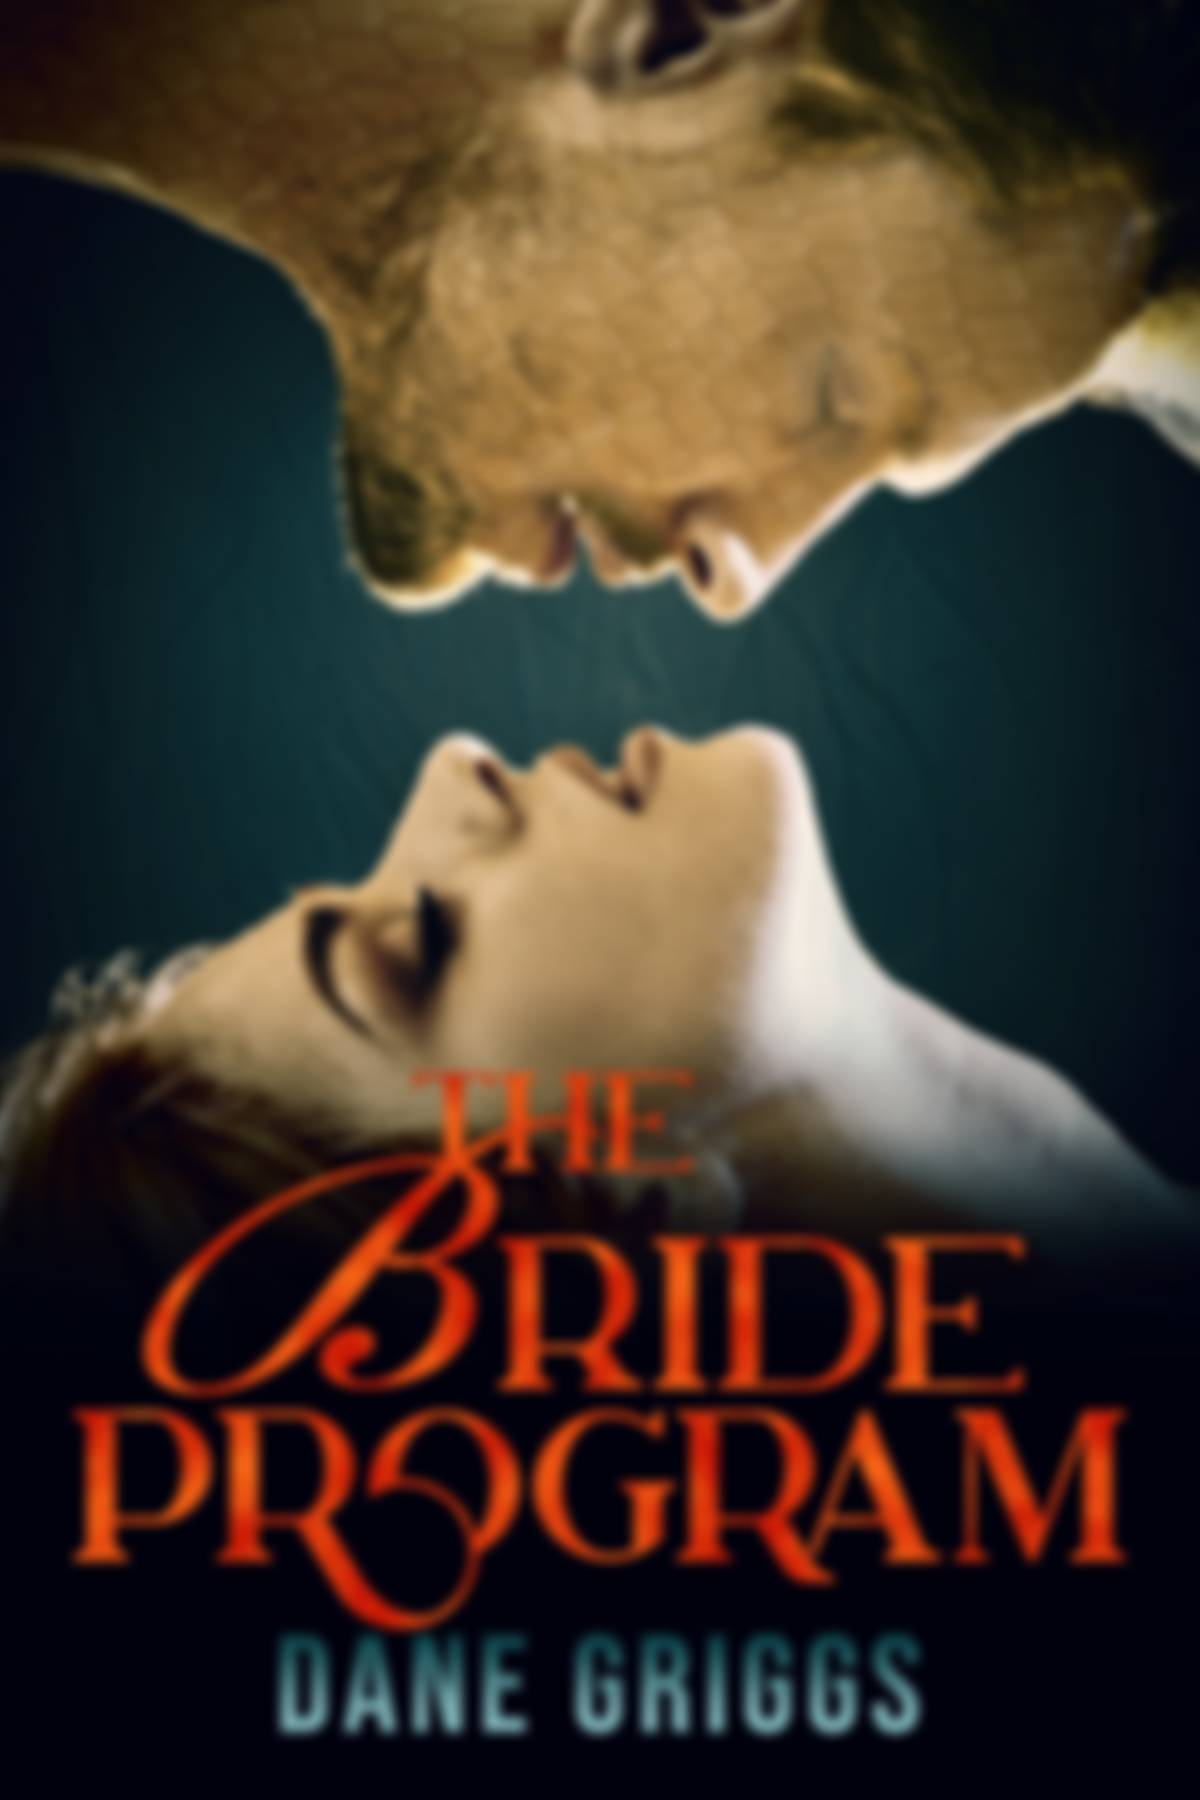 Book cover with the title The Bride Program and author name Dane Griggs. Features the image of man's face above a women with eyes closed looking like they are about to kiss.